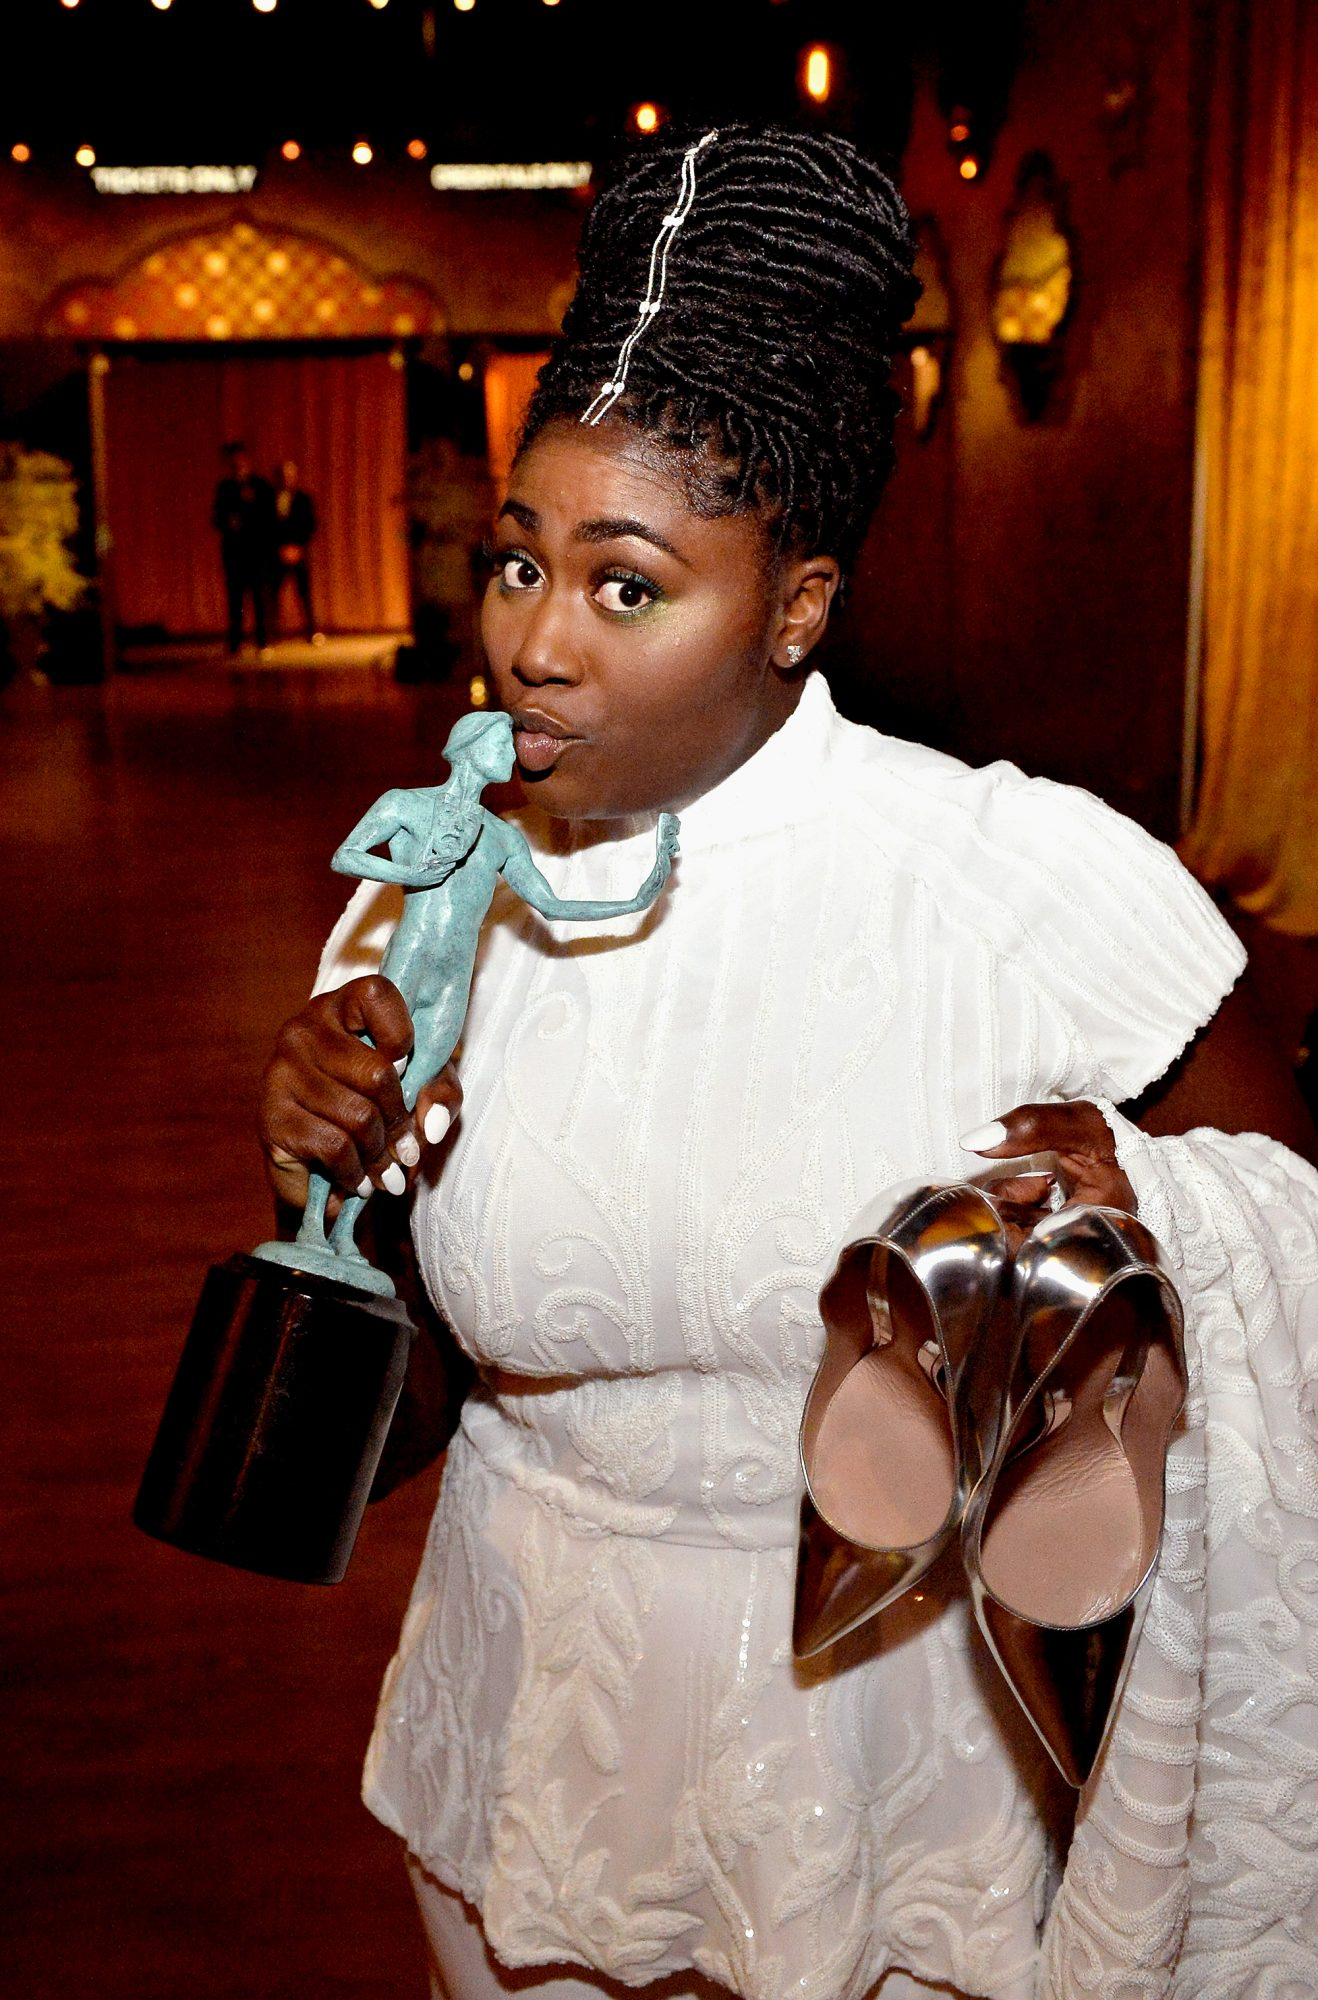 LOS ANGELES, CA - JANUARY 29: Actor Danielle Brooks, winner of the Outstanding Ensemble in a Comedy Series award of 'Orange Is the New Black,' pose with award during The 23rd Annual Screen Actors Guild Awards at The Shrine Auditorium on January 29, 2017 in Los Angeles, California. 26592_011 (Photo by Stefanie Keenan/Getty Images for TNT)